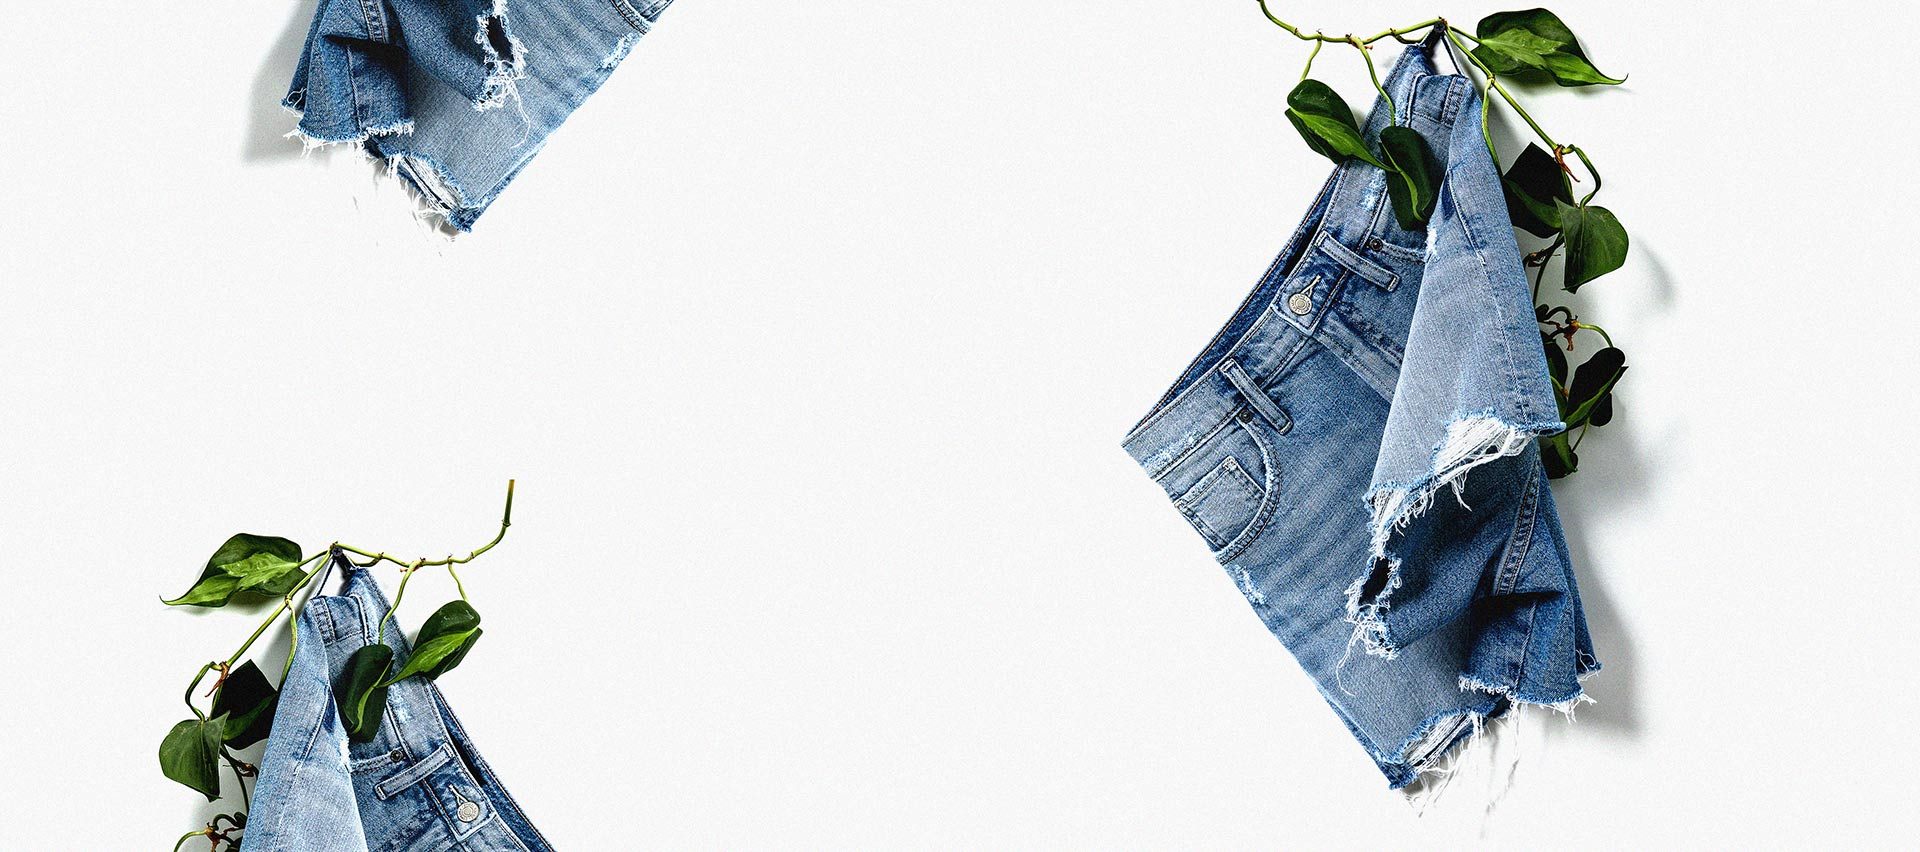 Silver Jeans Co. - Shorts background composition